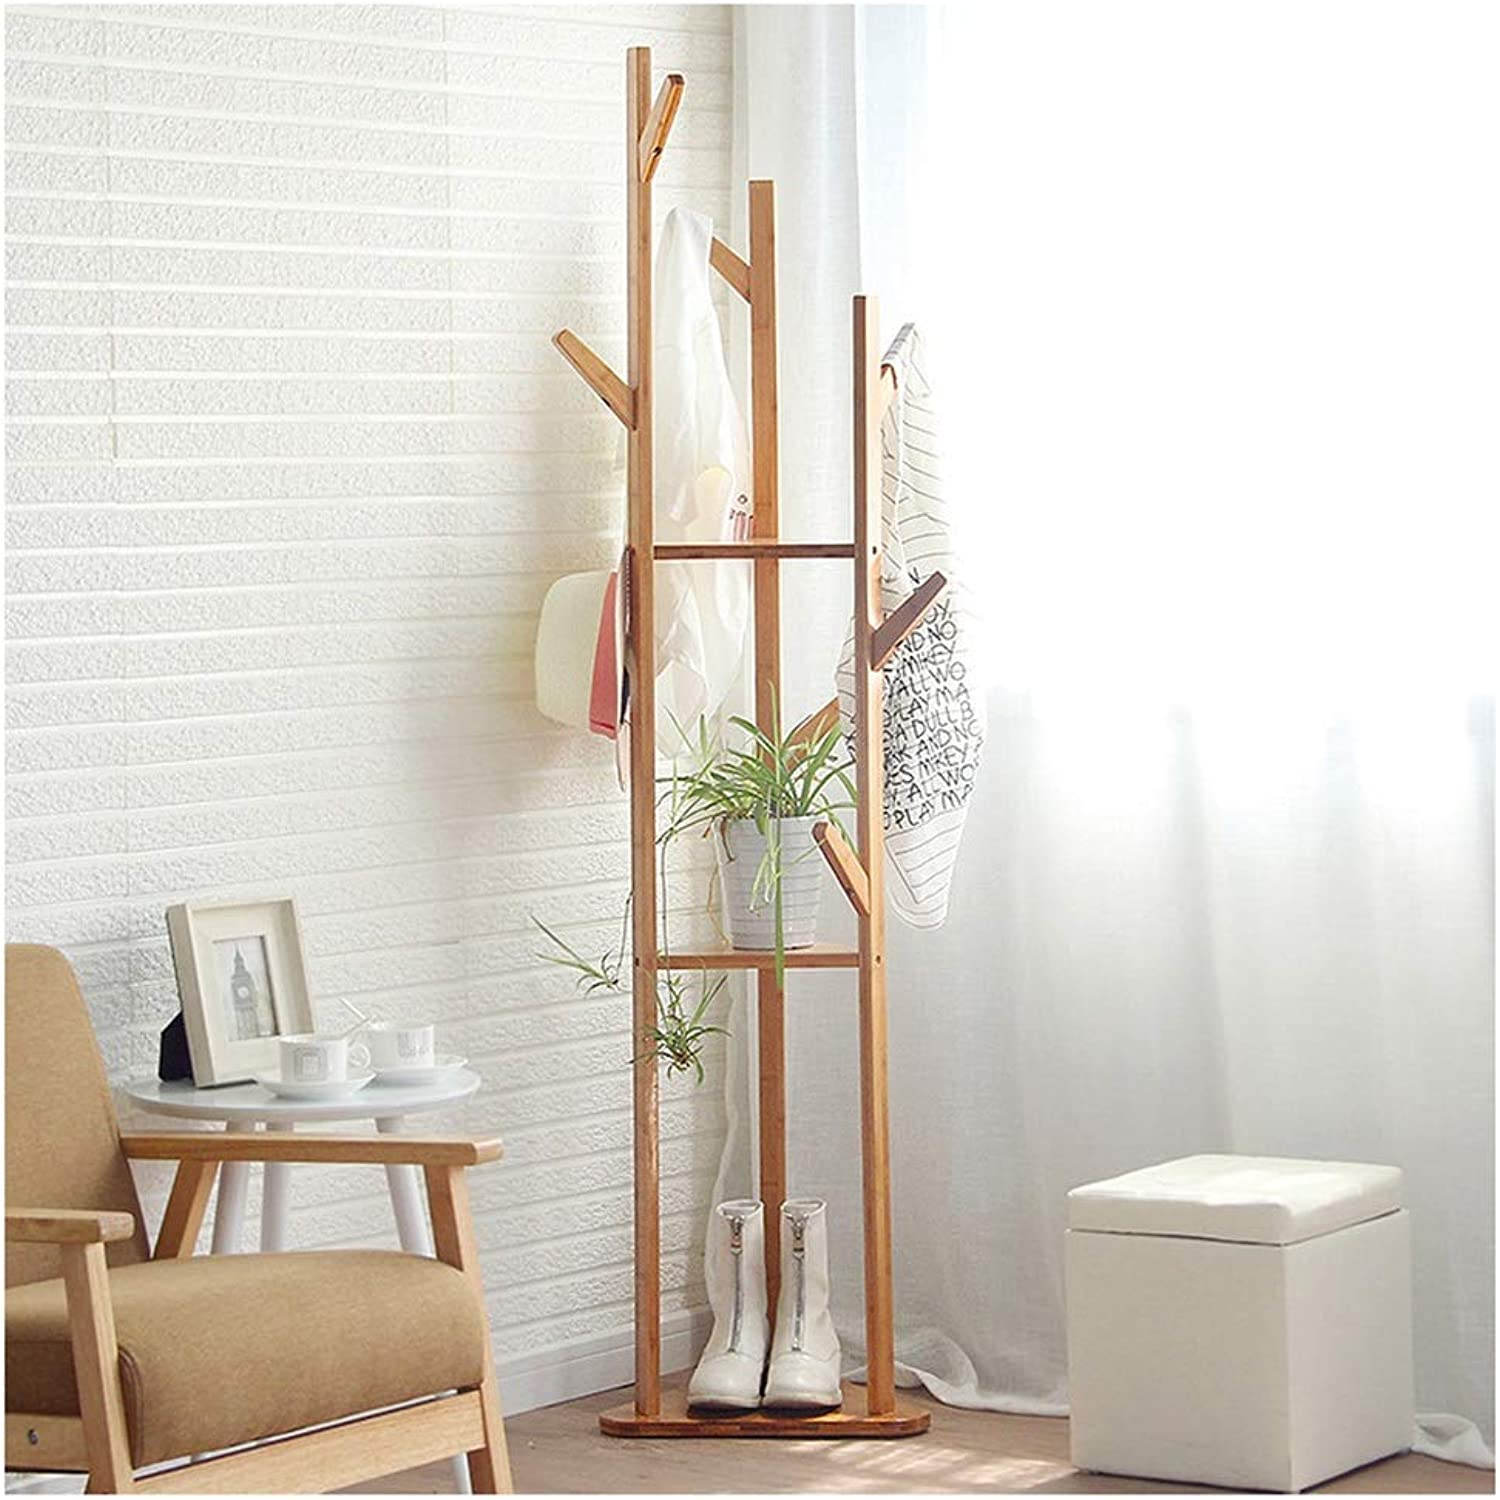 Y.H_Super Coat Racks Standing Coat Rack in Black Finish Bentwood Solid Wood Coat Hat Umbrella Floor Standing Rack Prestige Hall Trees Bedroom Hallway